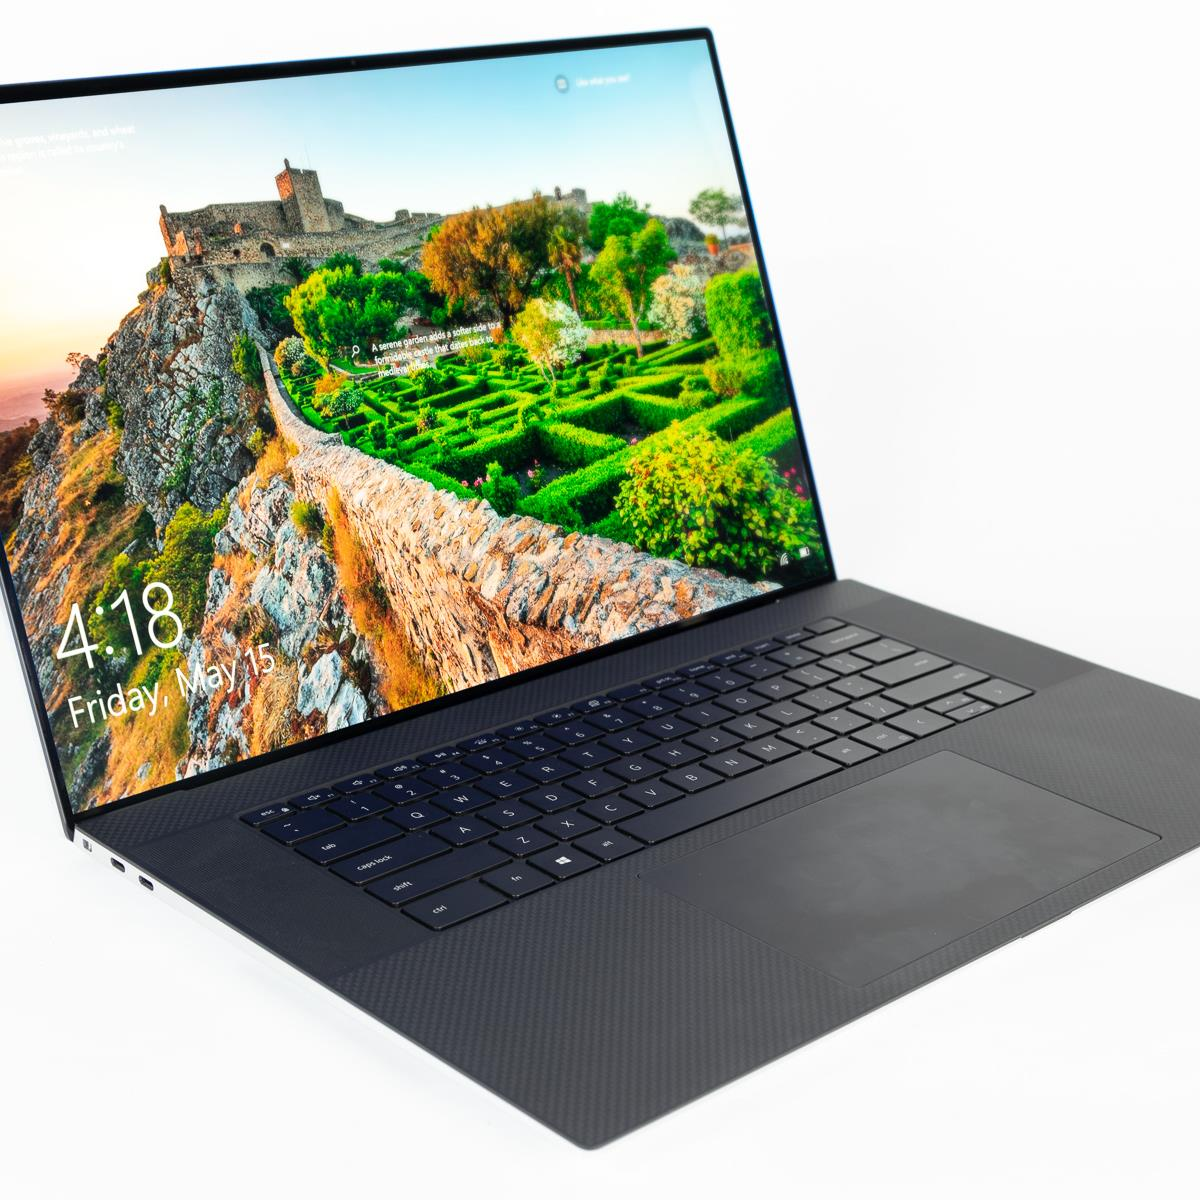 "DELL XPS 17-9700-2500-SLVC | Intel Core i7 10875H 2.30Ghz, 32GB RAM, 1TB SSD, 17.0"" UHD Touch Screen, 6GB NVIDIA Geforce RTX 2060 Graphics, Wireless, Bluetooth, Camera, Fingerprint, Windows 10 Home, Eng-Arab Keyboard,1 Year DELL Warranty."